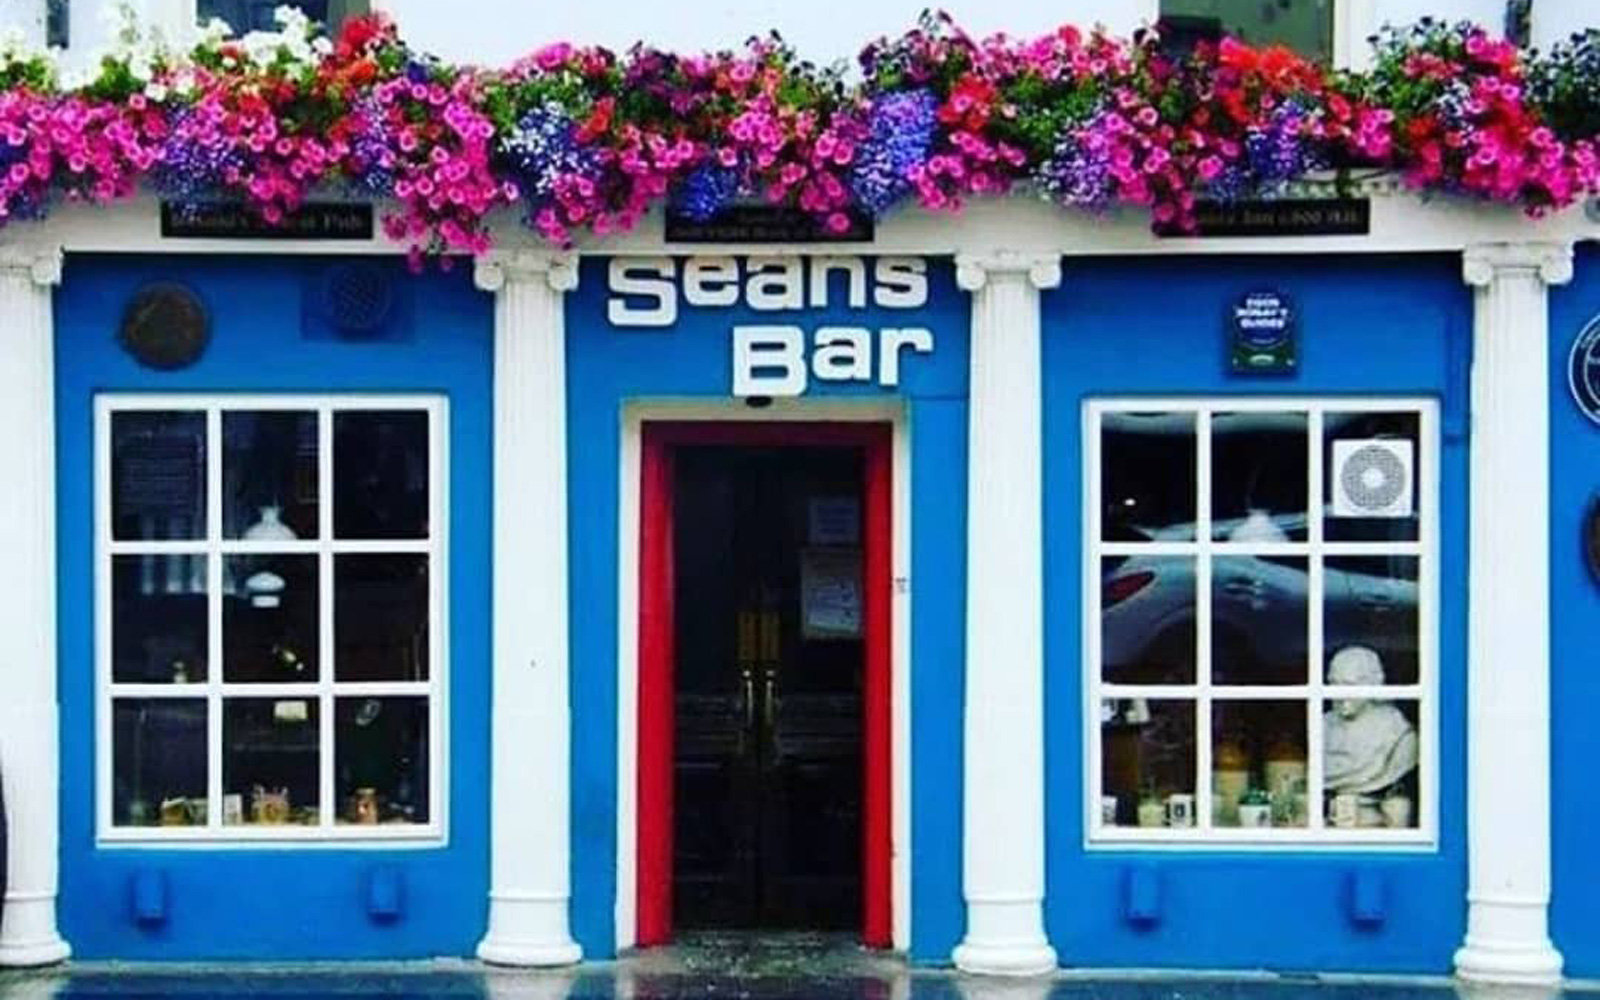 Oldest Pub in Ireland, Sean's Bar